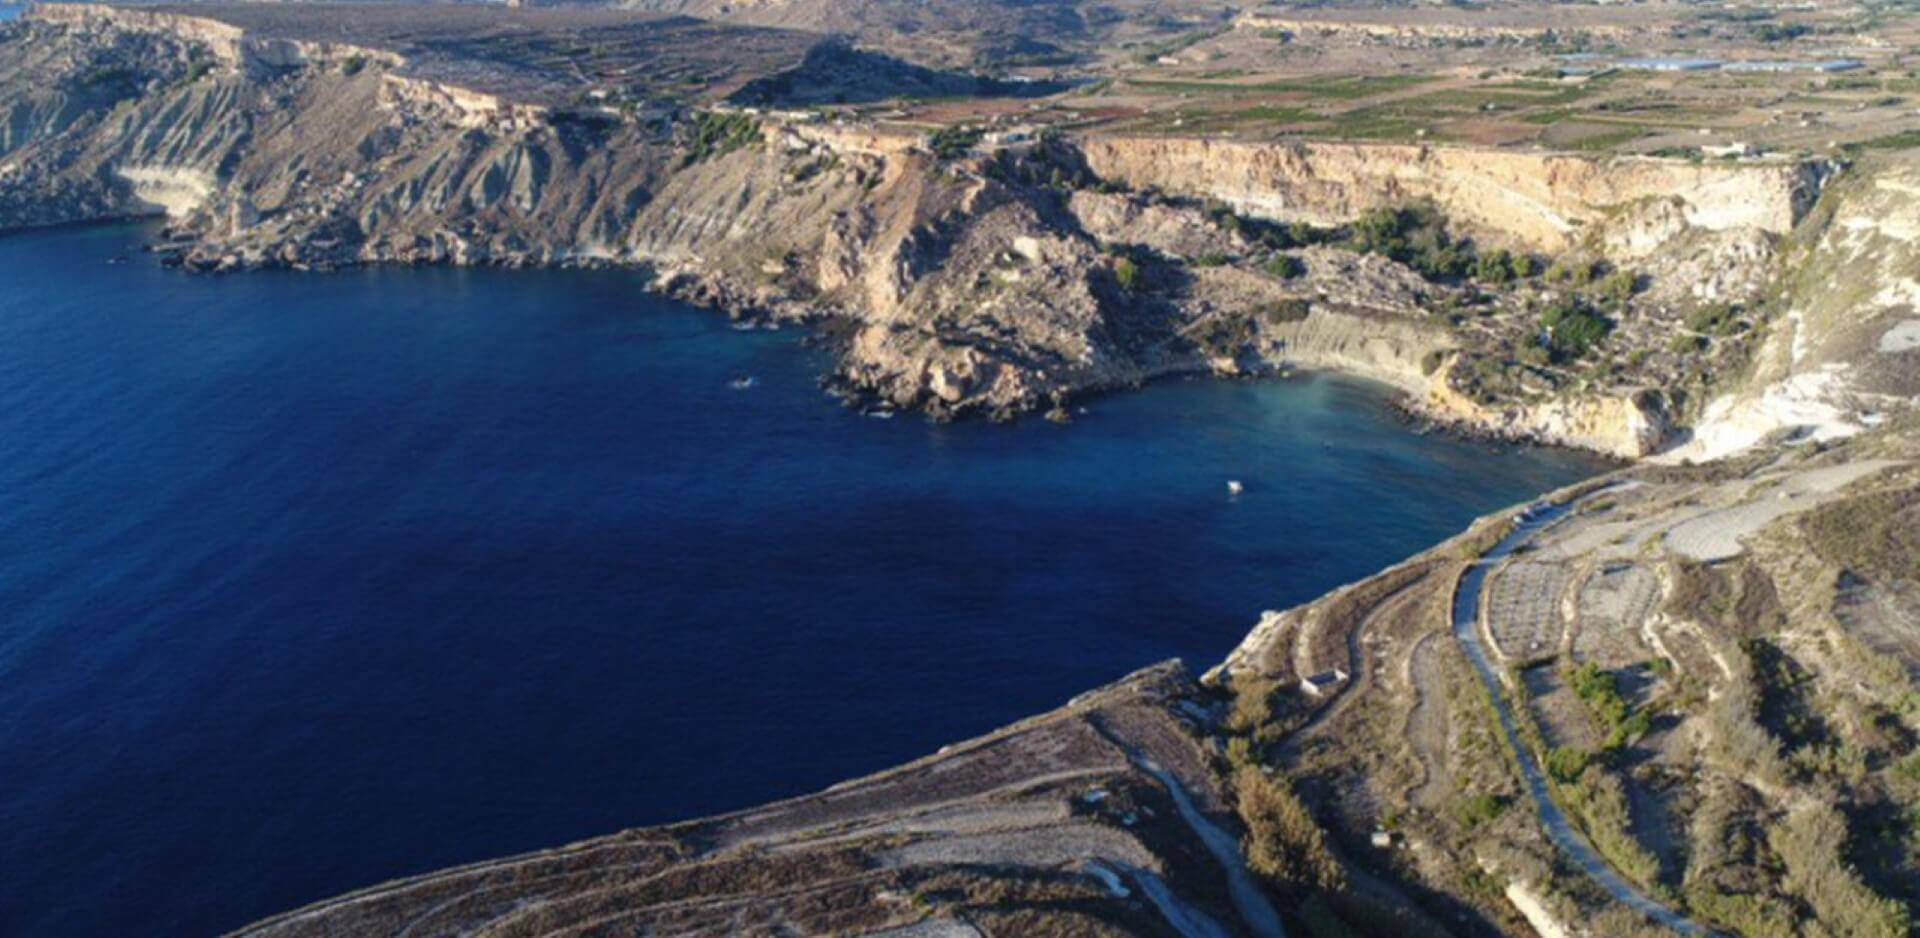 Hydrographic model simulations for Malta's marine waters to quantify and investigate pressures in the marine environment